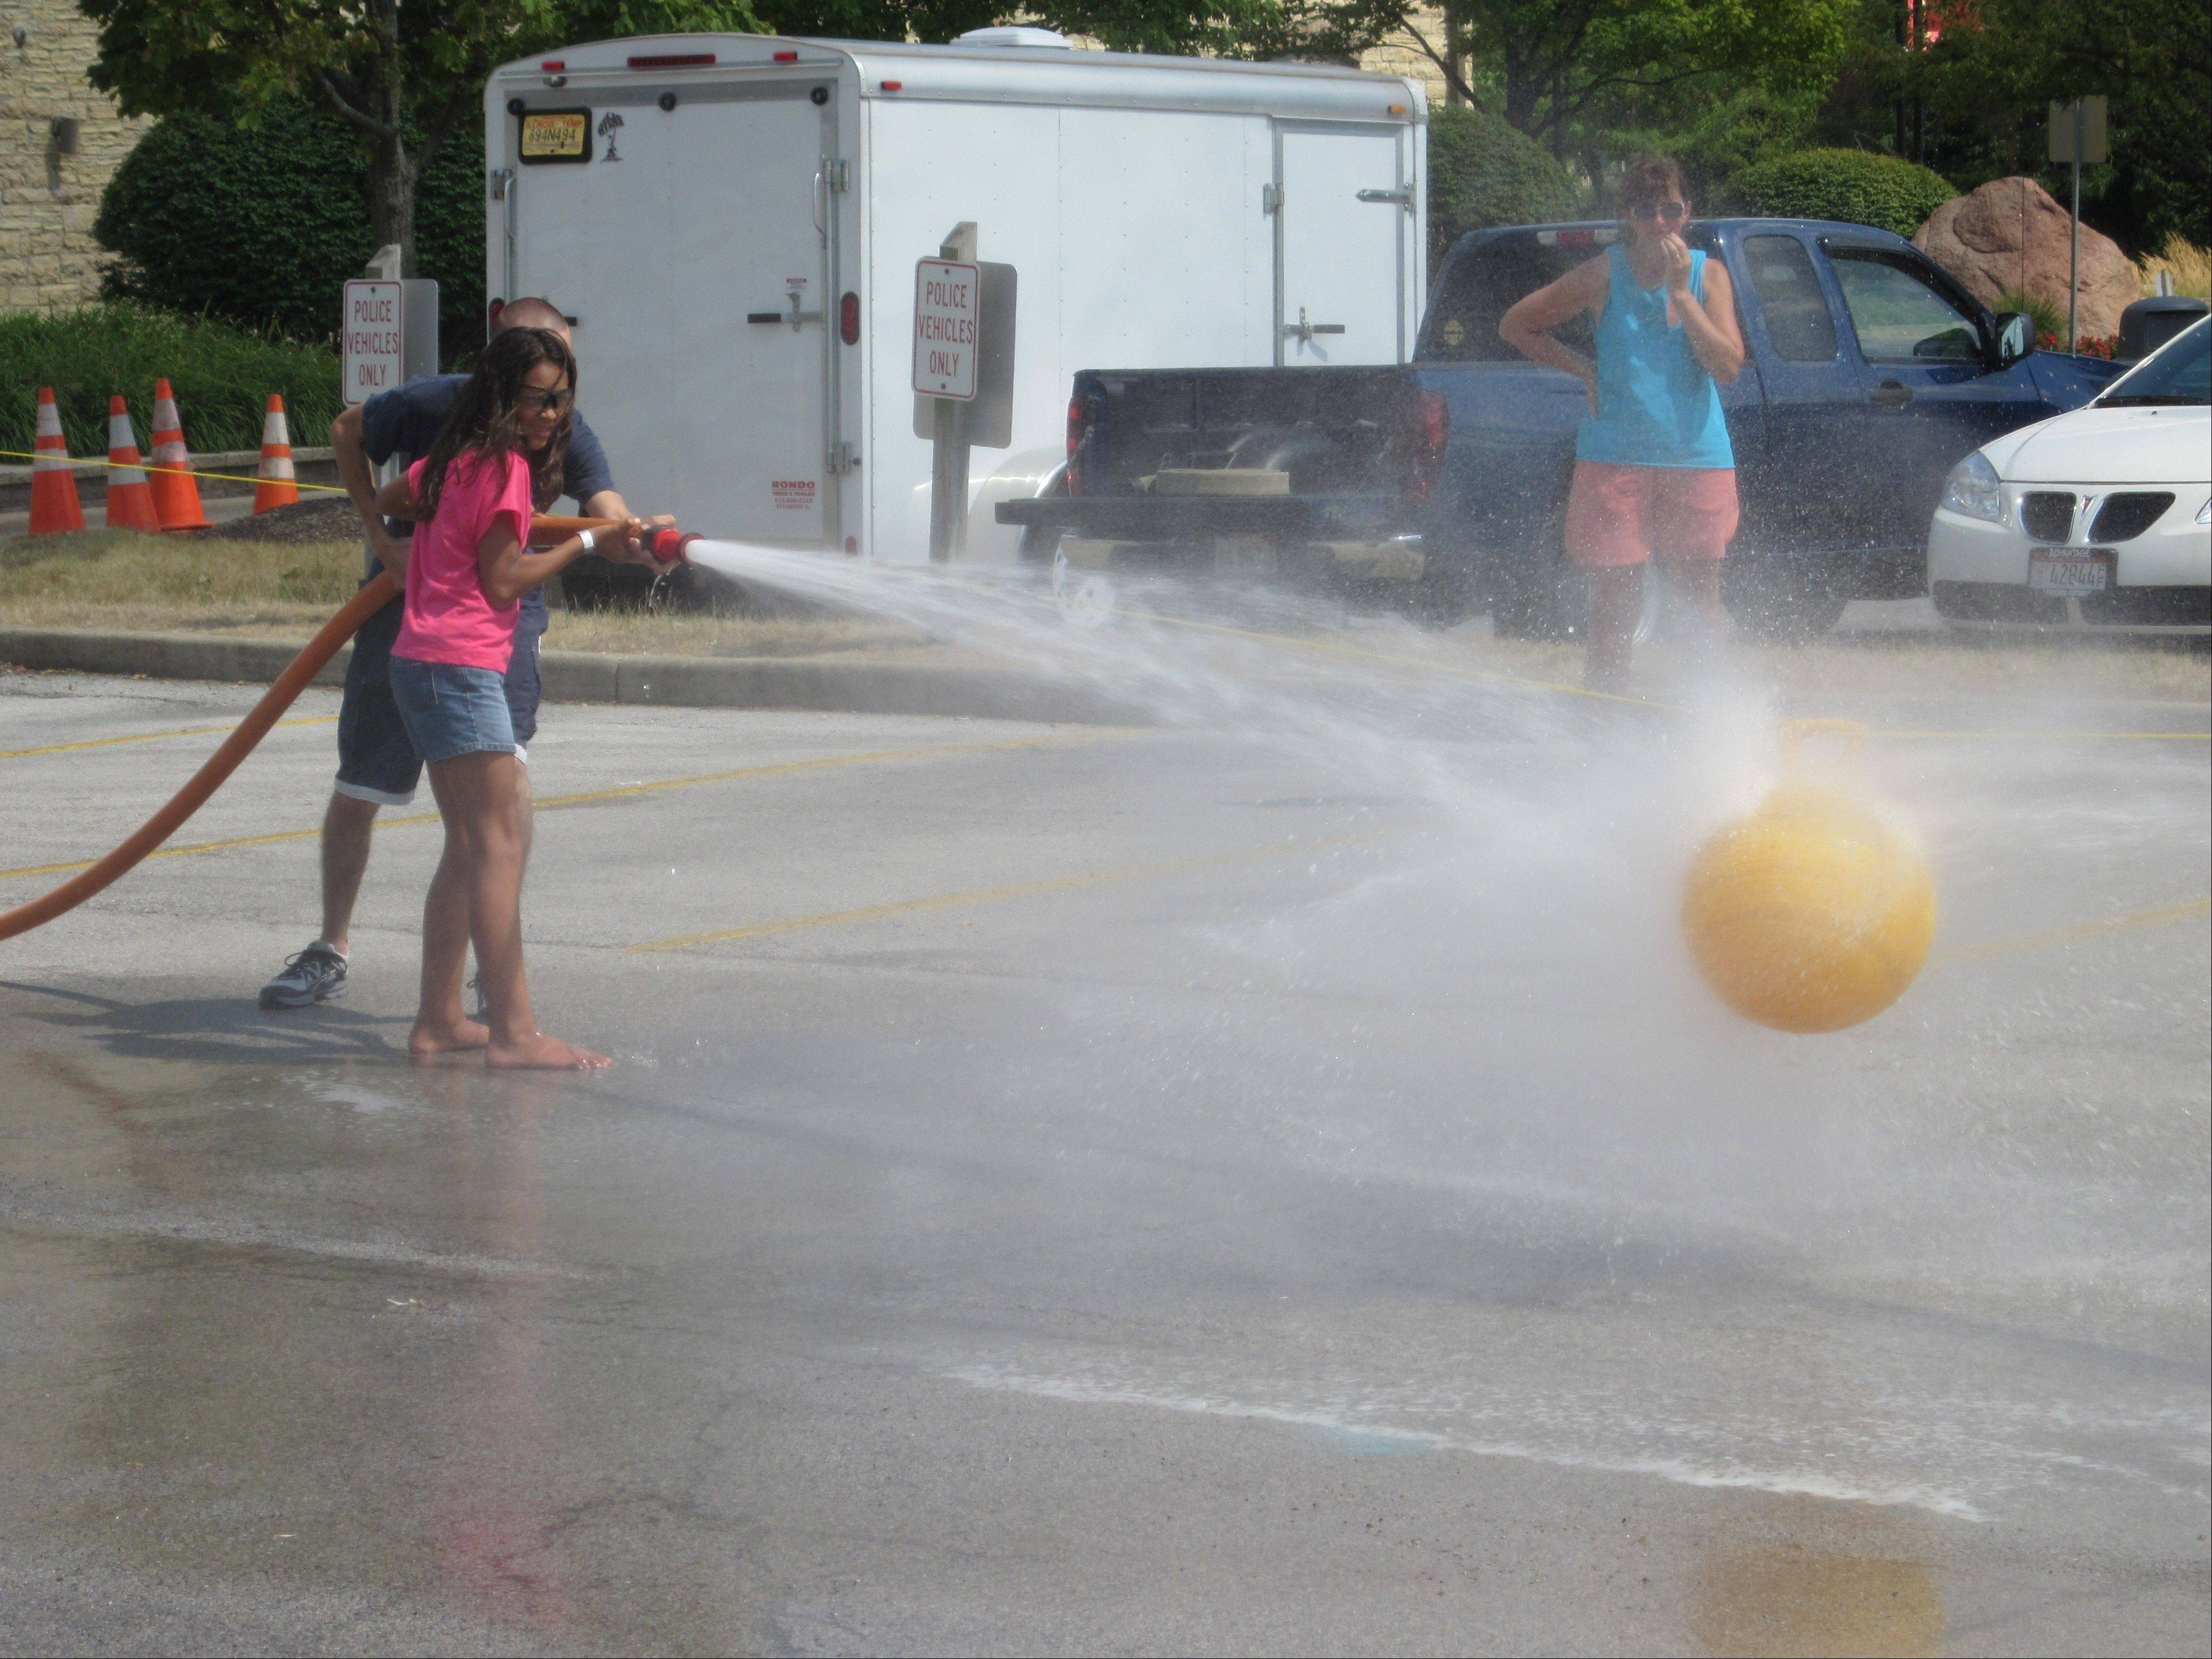 The fire hose challenge helped people beat the heat Sunday at the Windmill City Festival at the Riverwalk in downtown Batavia. The event also included an ice cream eating contest.